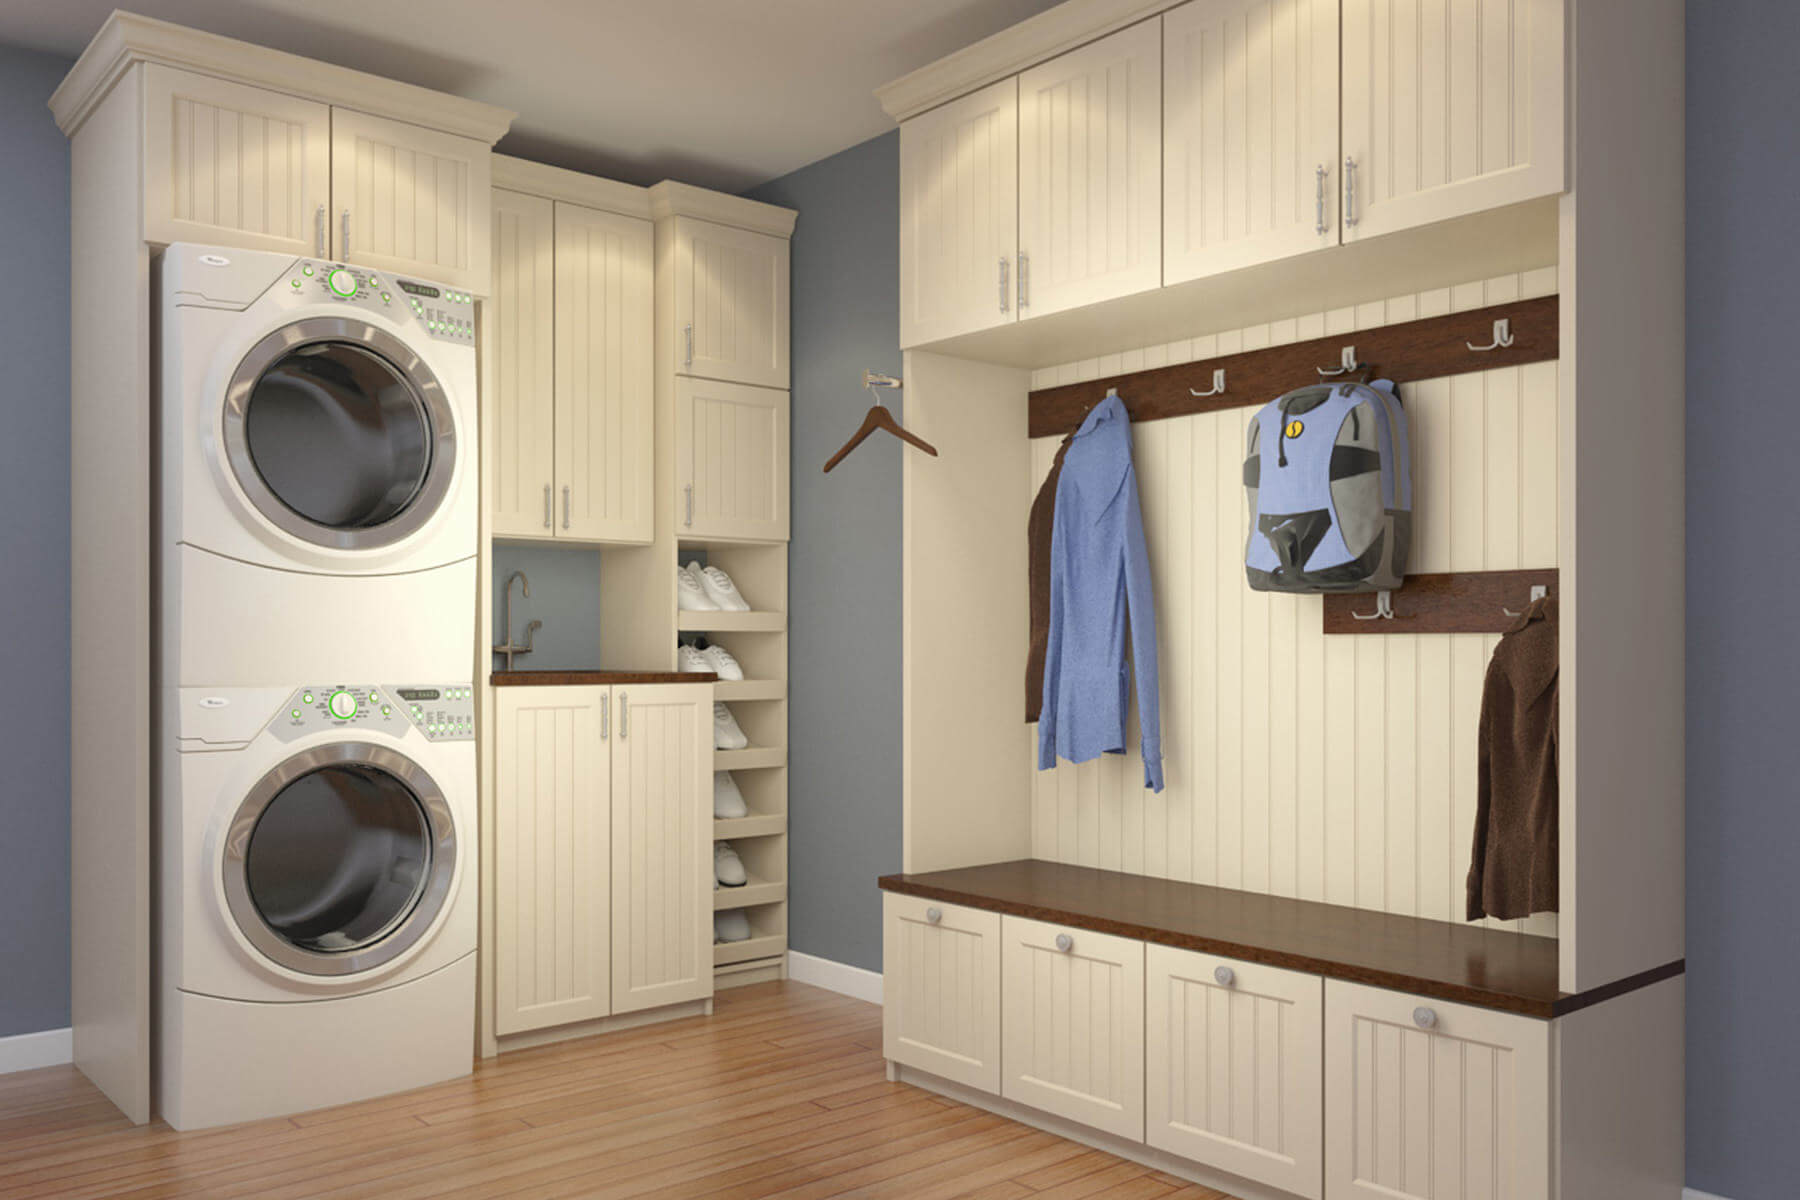 10 stellar laundry room designs by closet factory Laundry room blueprints